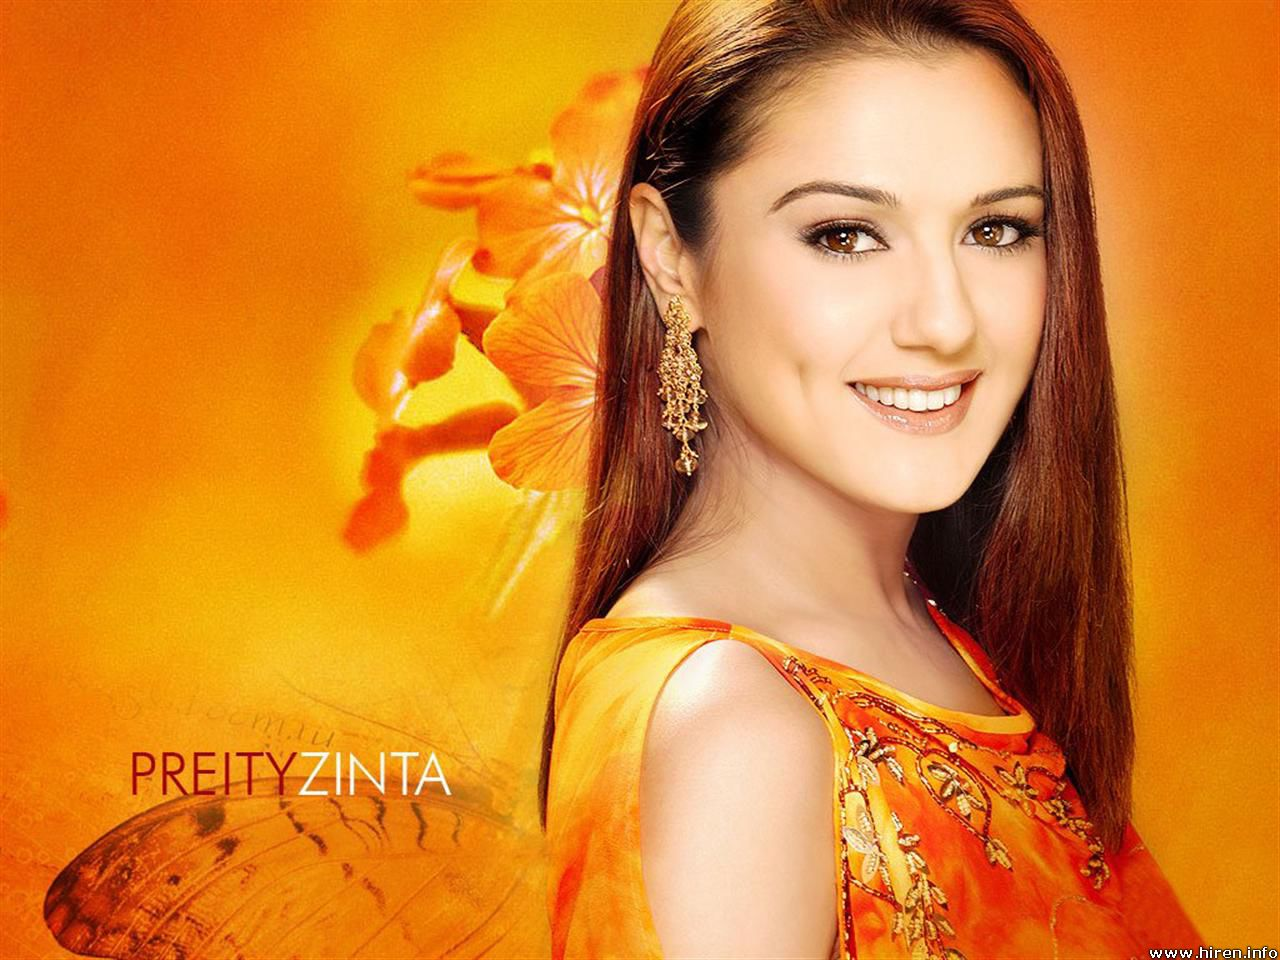 Top hd bollywood wallapers preity zinta wallpapers for desktop - Pc wallpaper hd bollywood ...